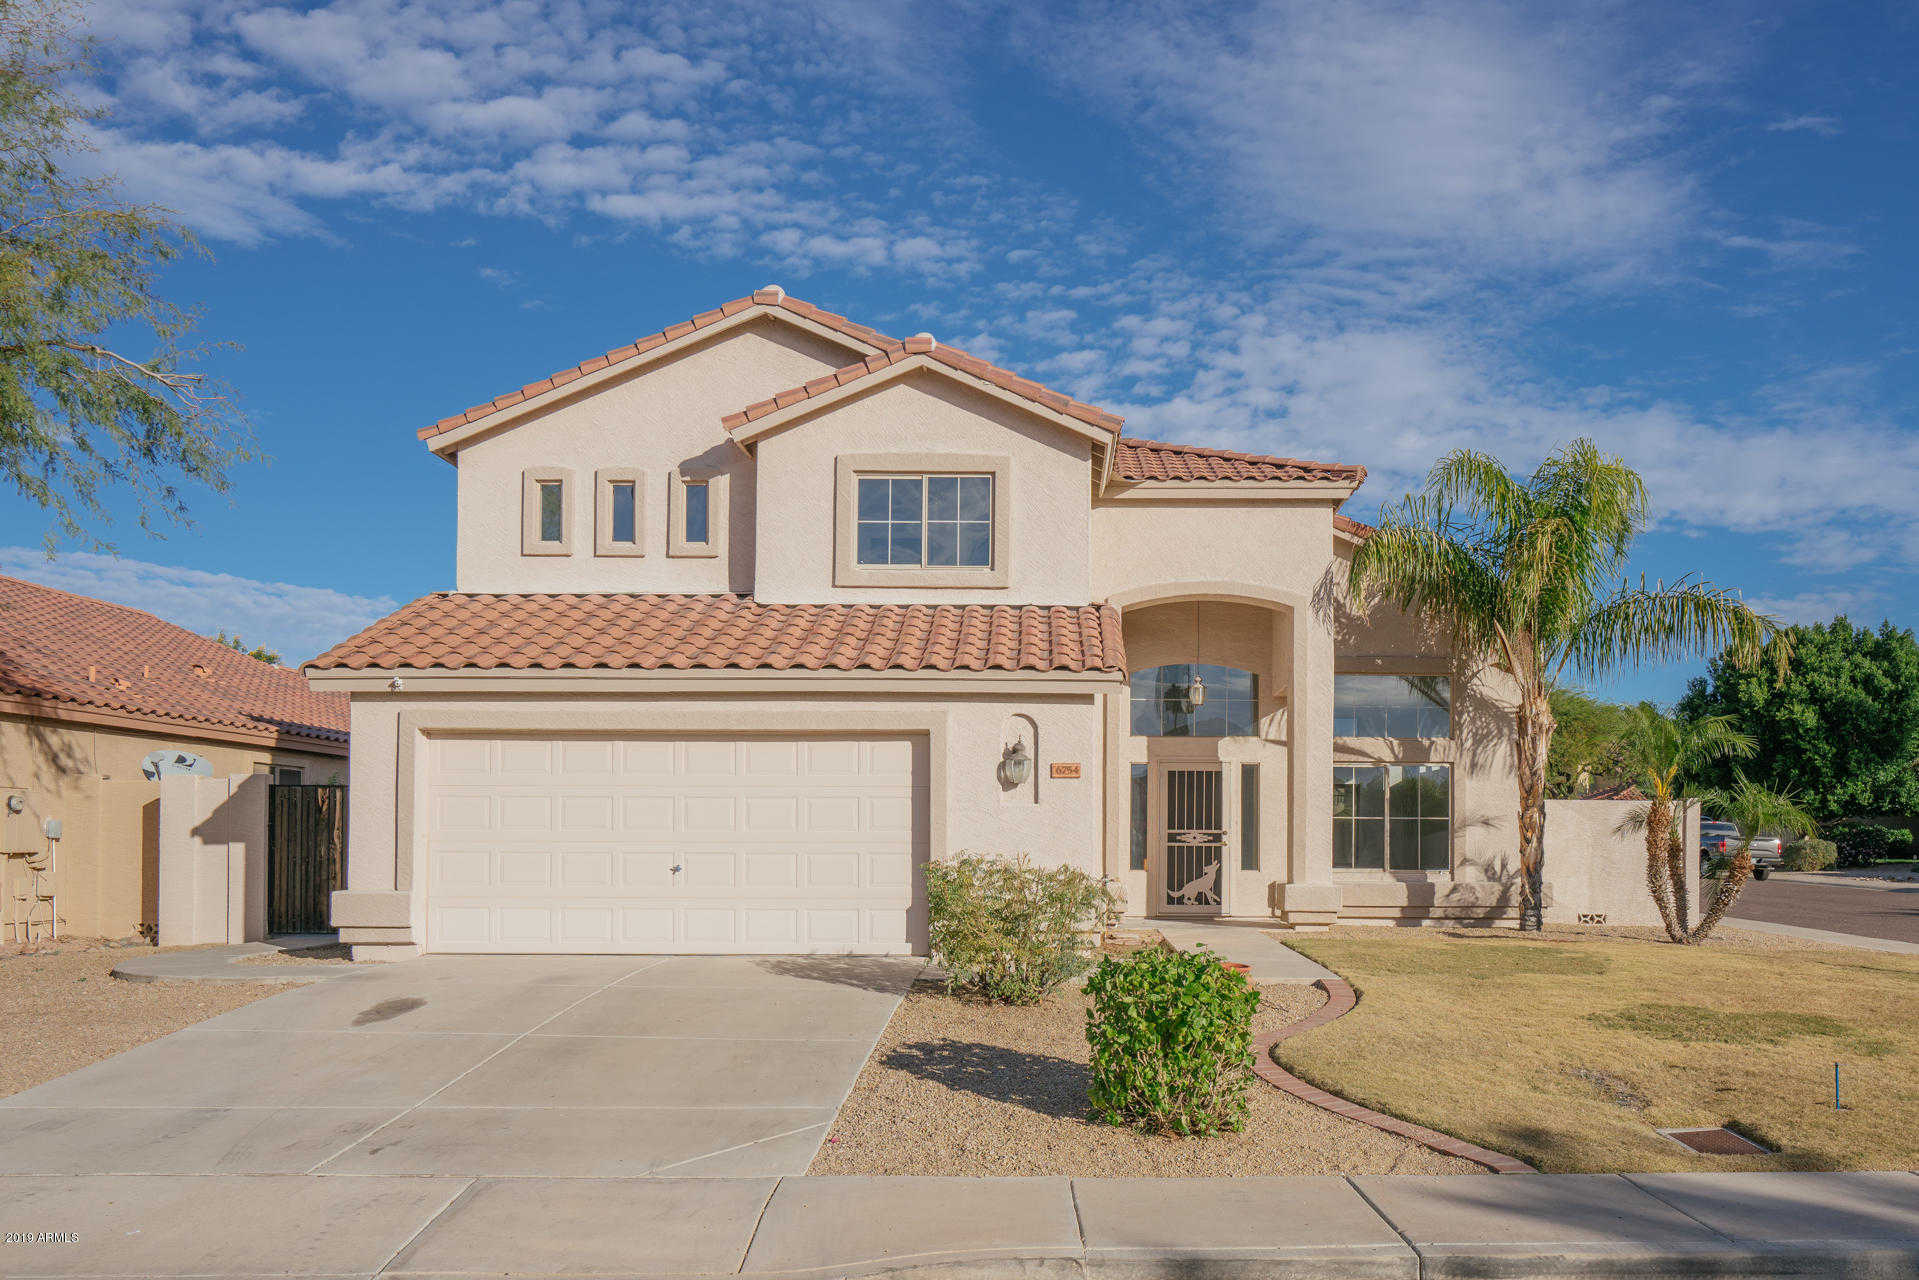 $380,000 - 4Br/3Ba - Home for Sale in Sienna, Glendale